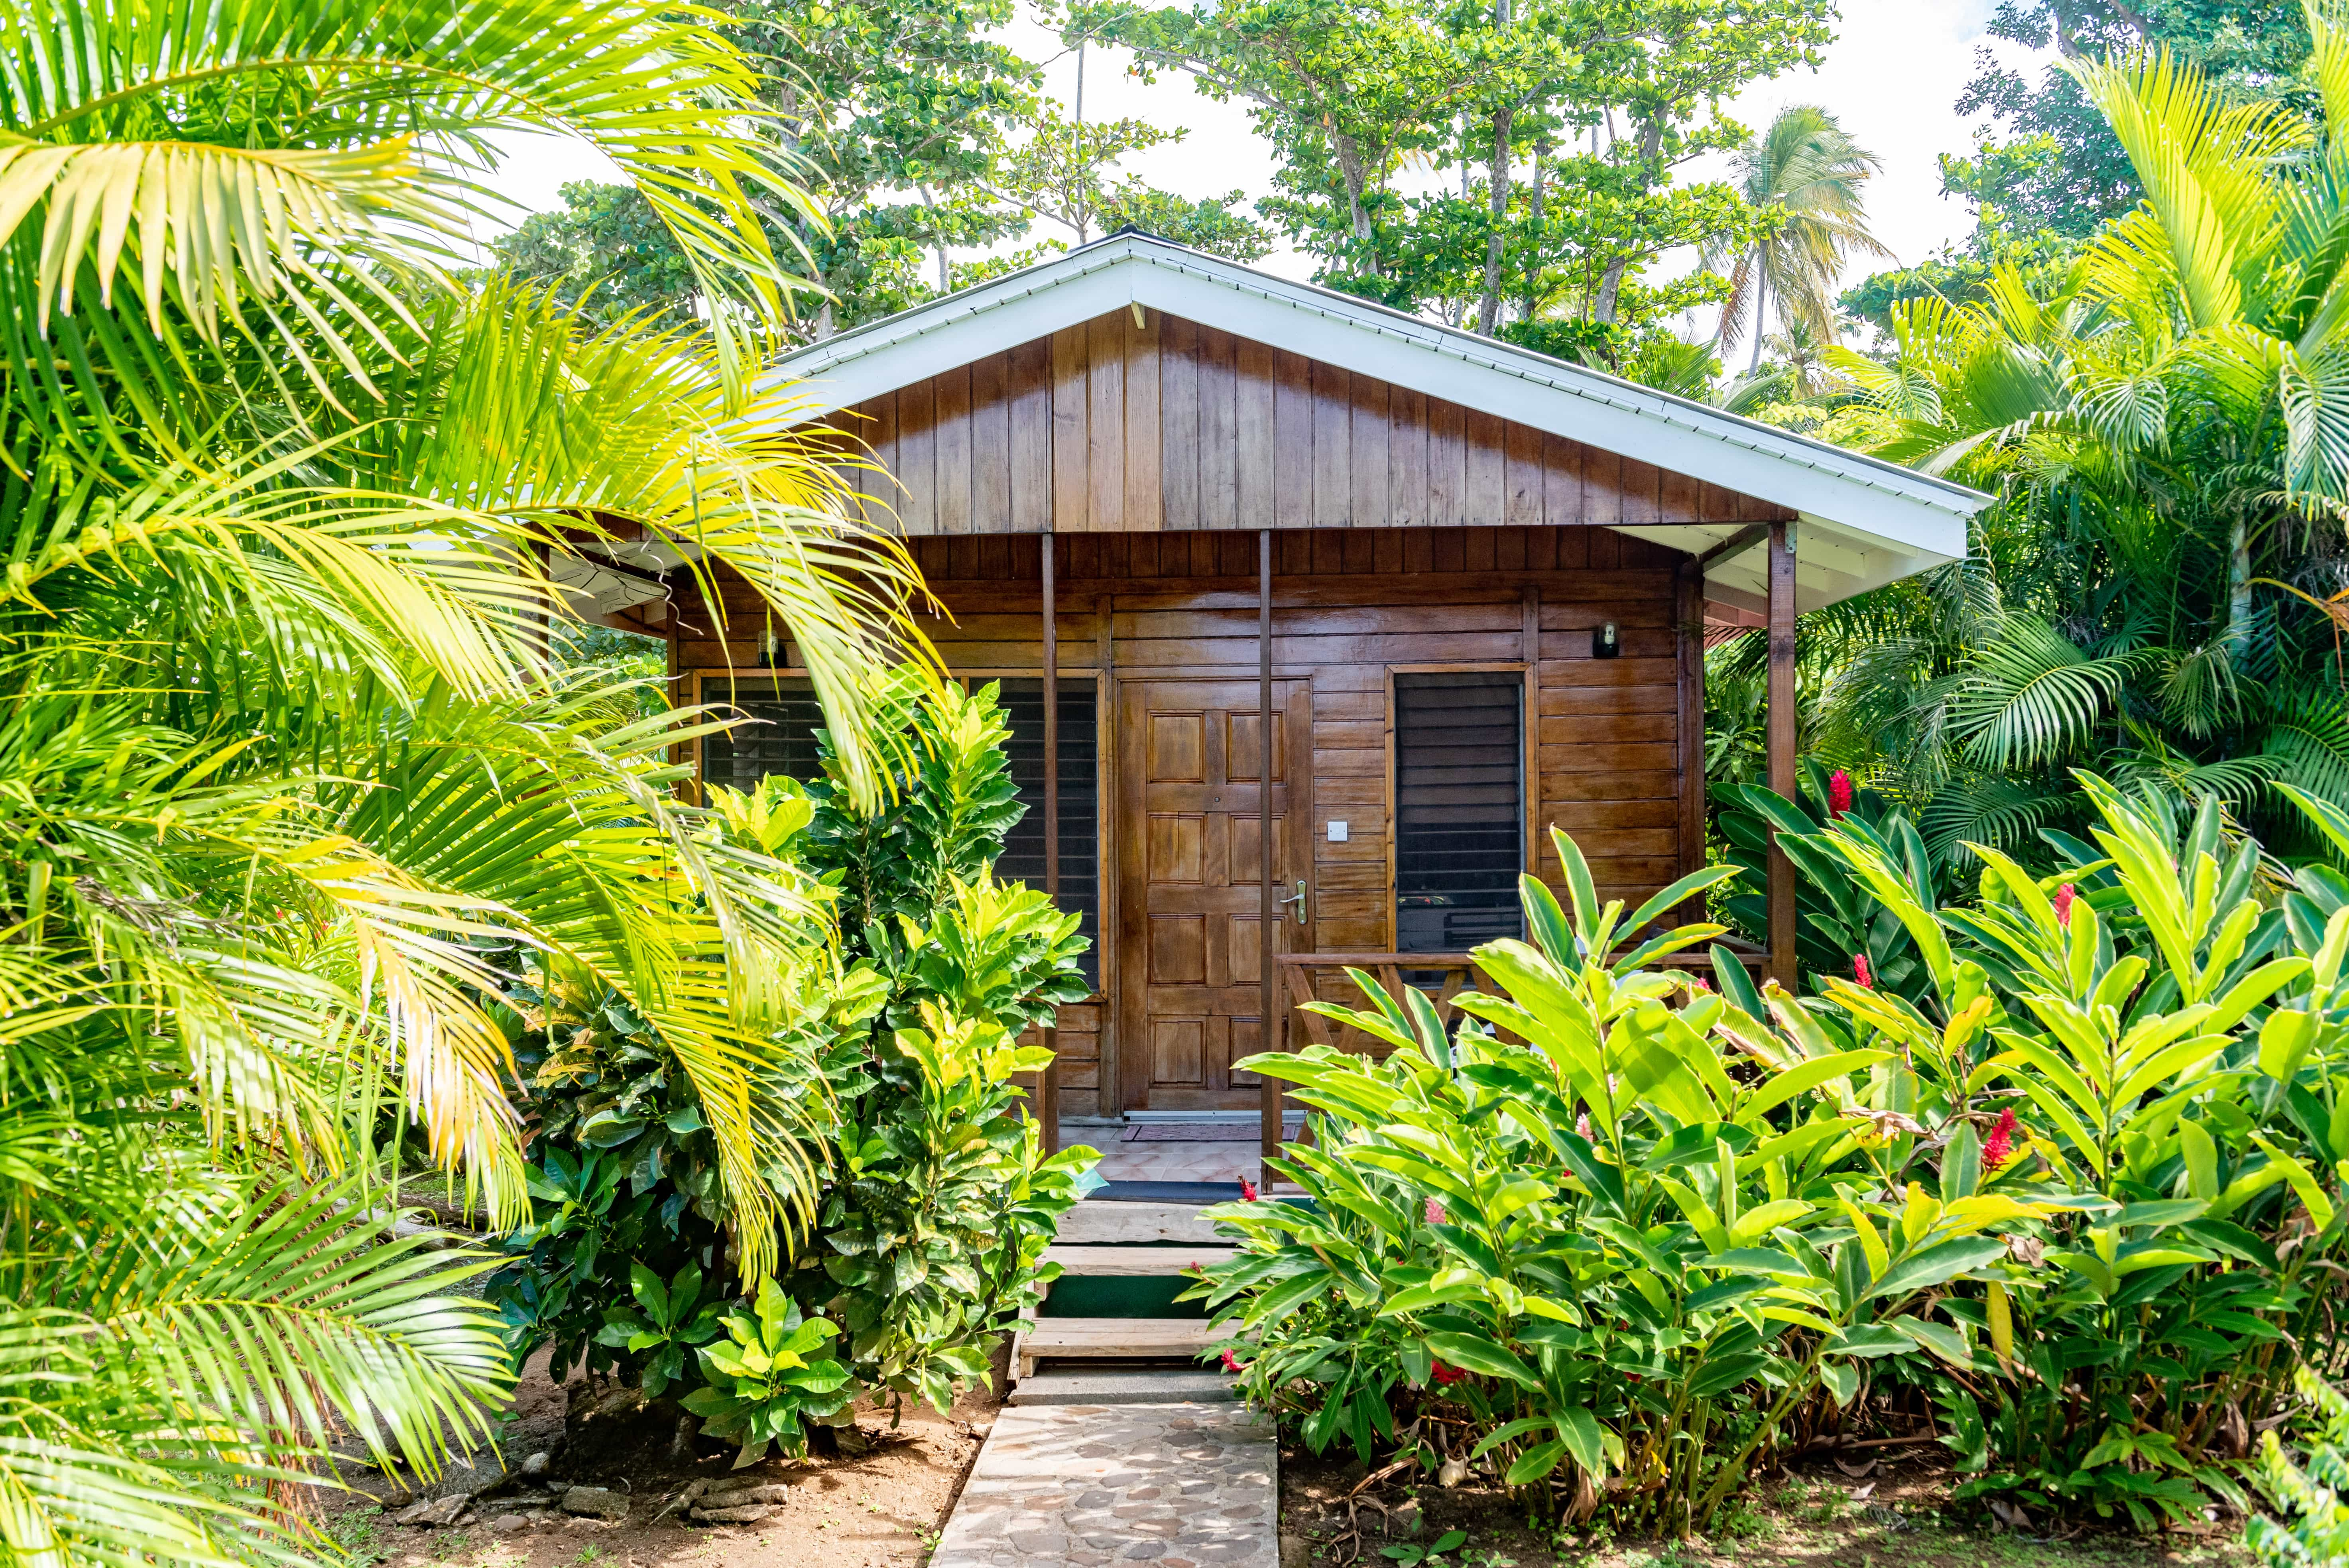 Picard Beach Cottages is just that; a collection of rustic wooden cottages right on the black sands of Portsmouth Beach.